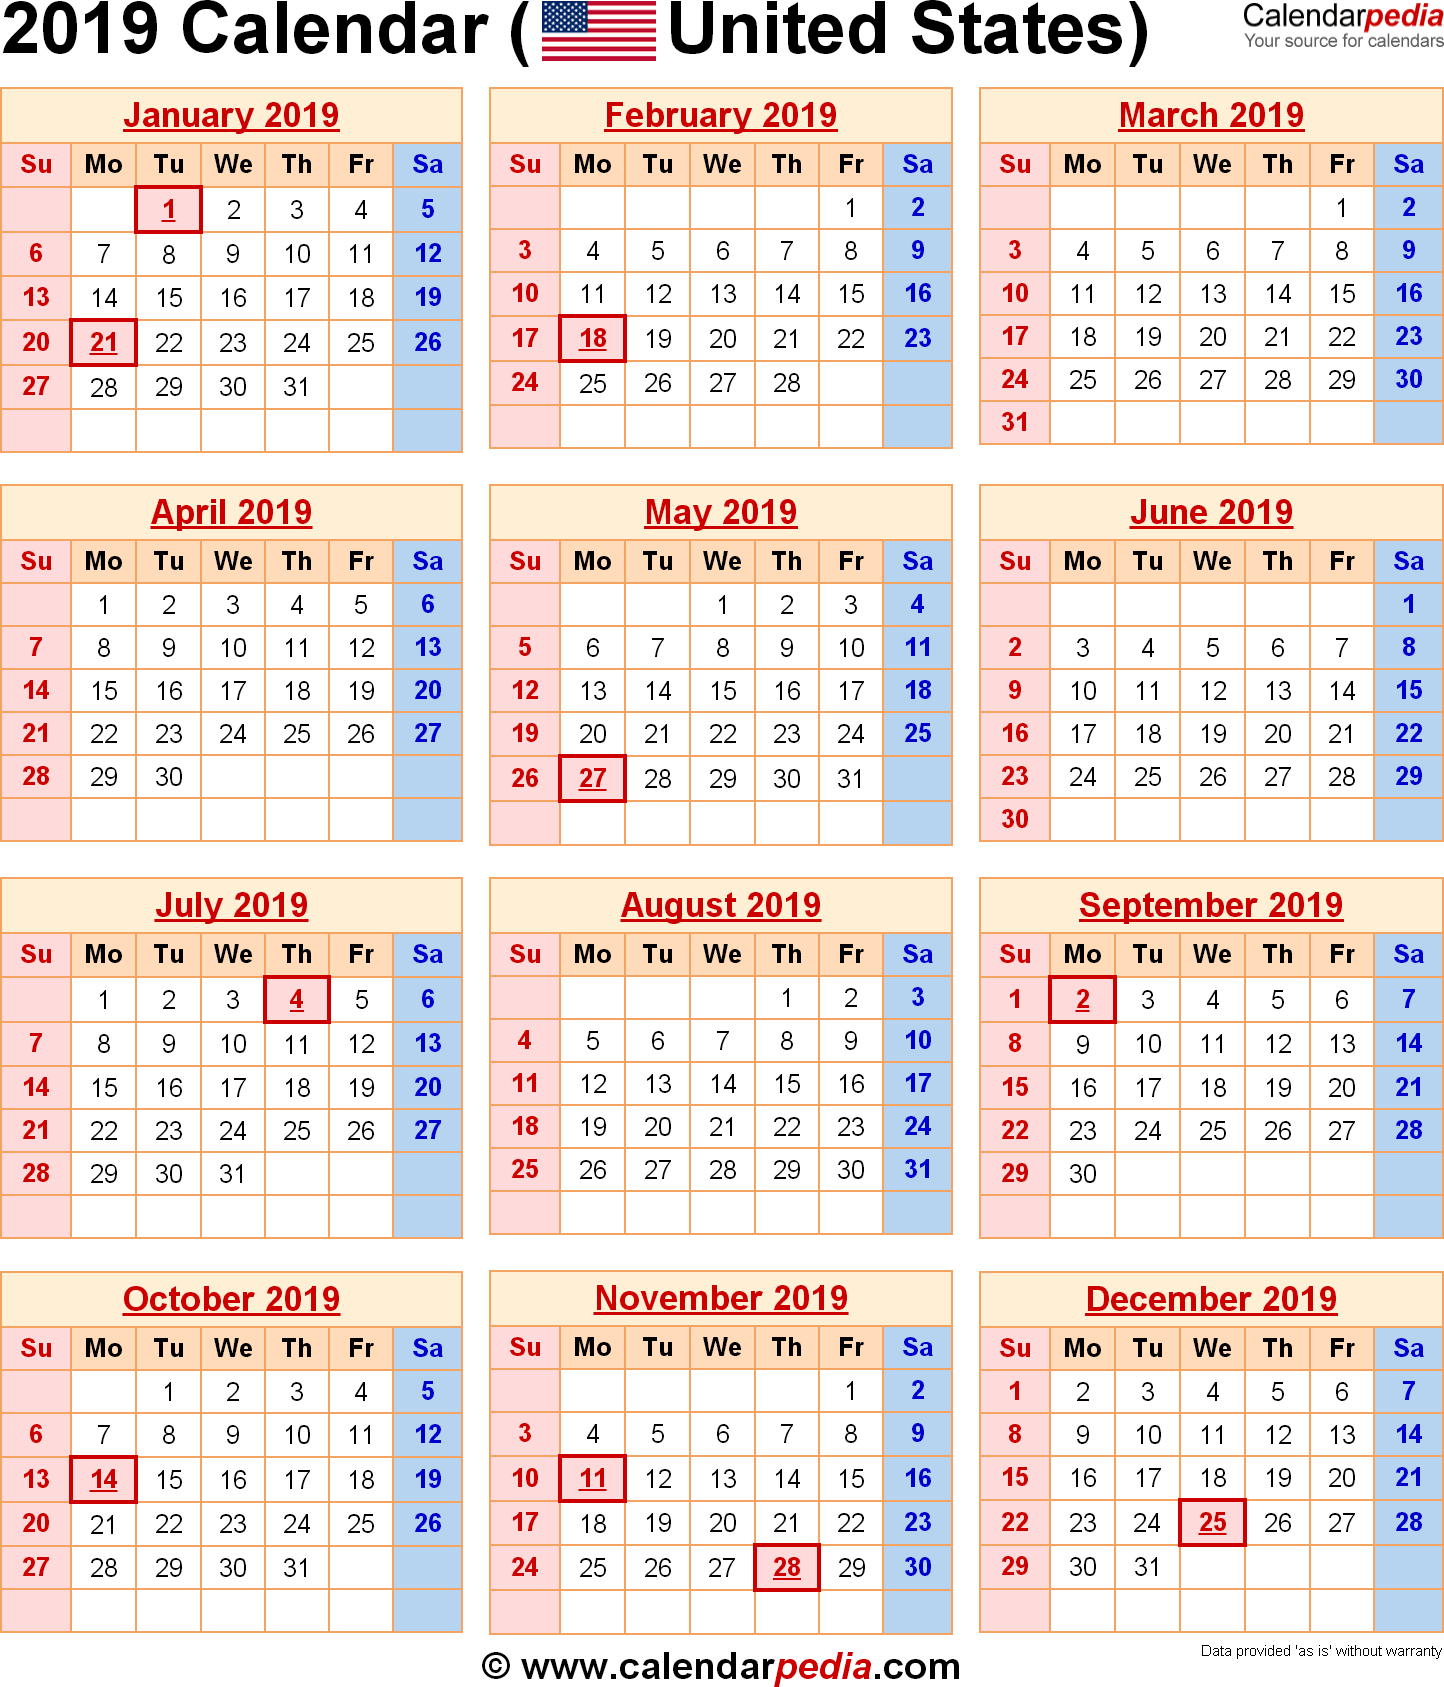 2019 Calendar With Federal Holidays throughout Bihar Sarkar Calender